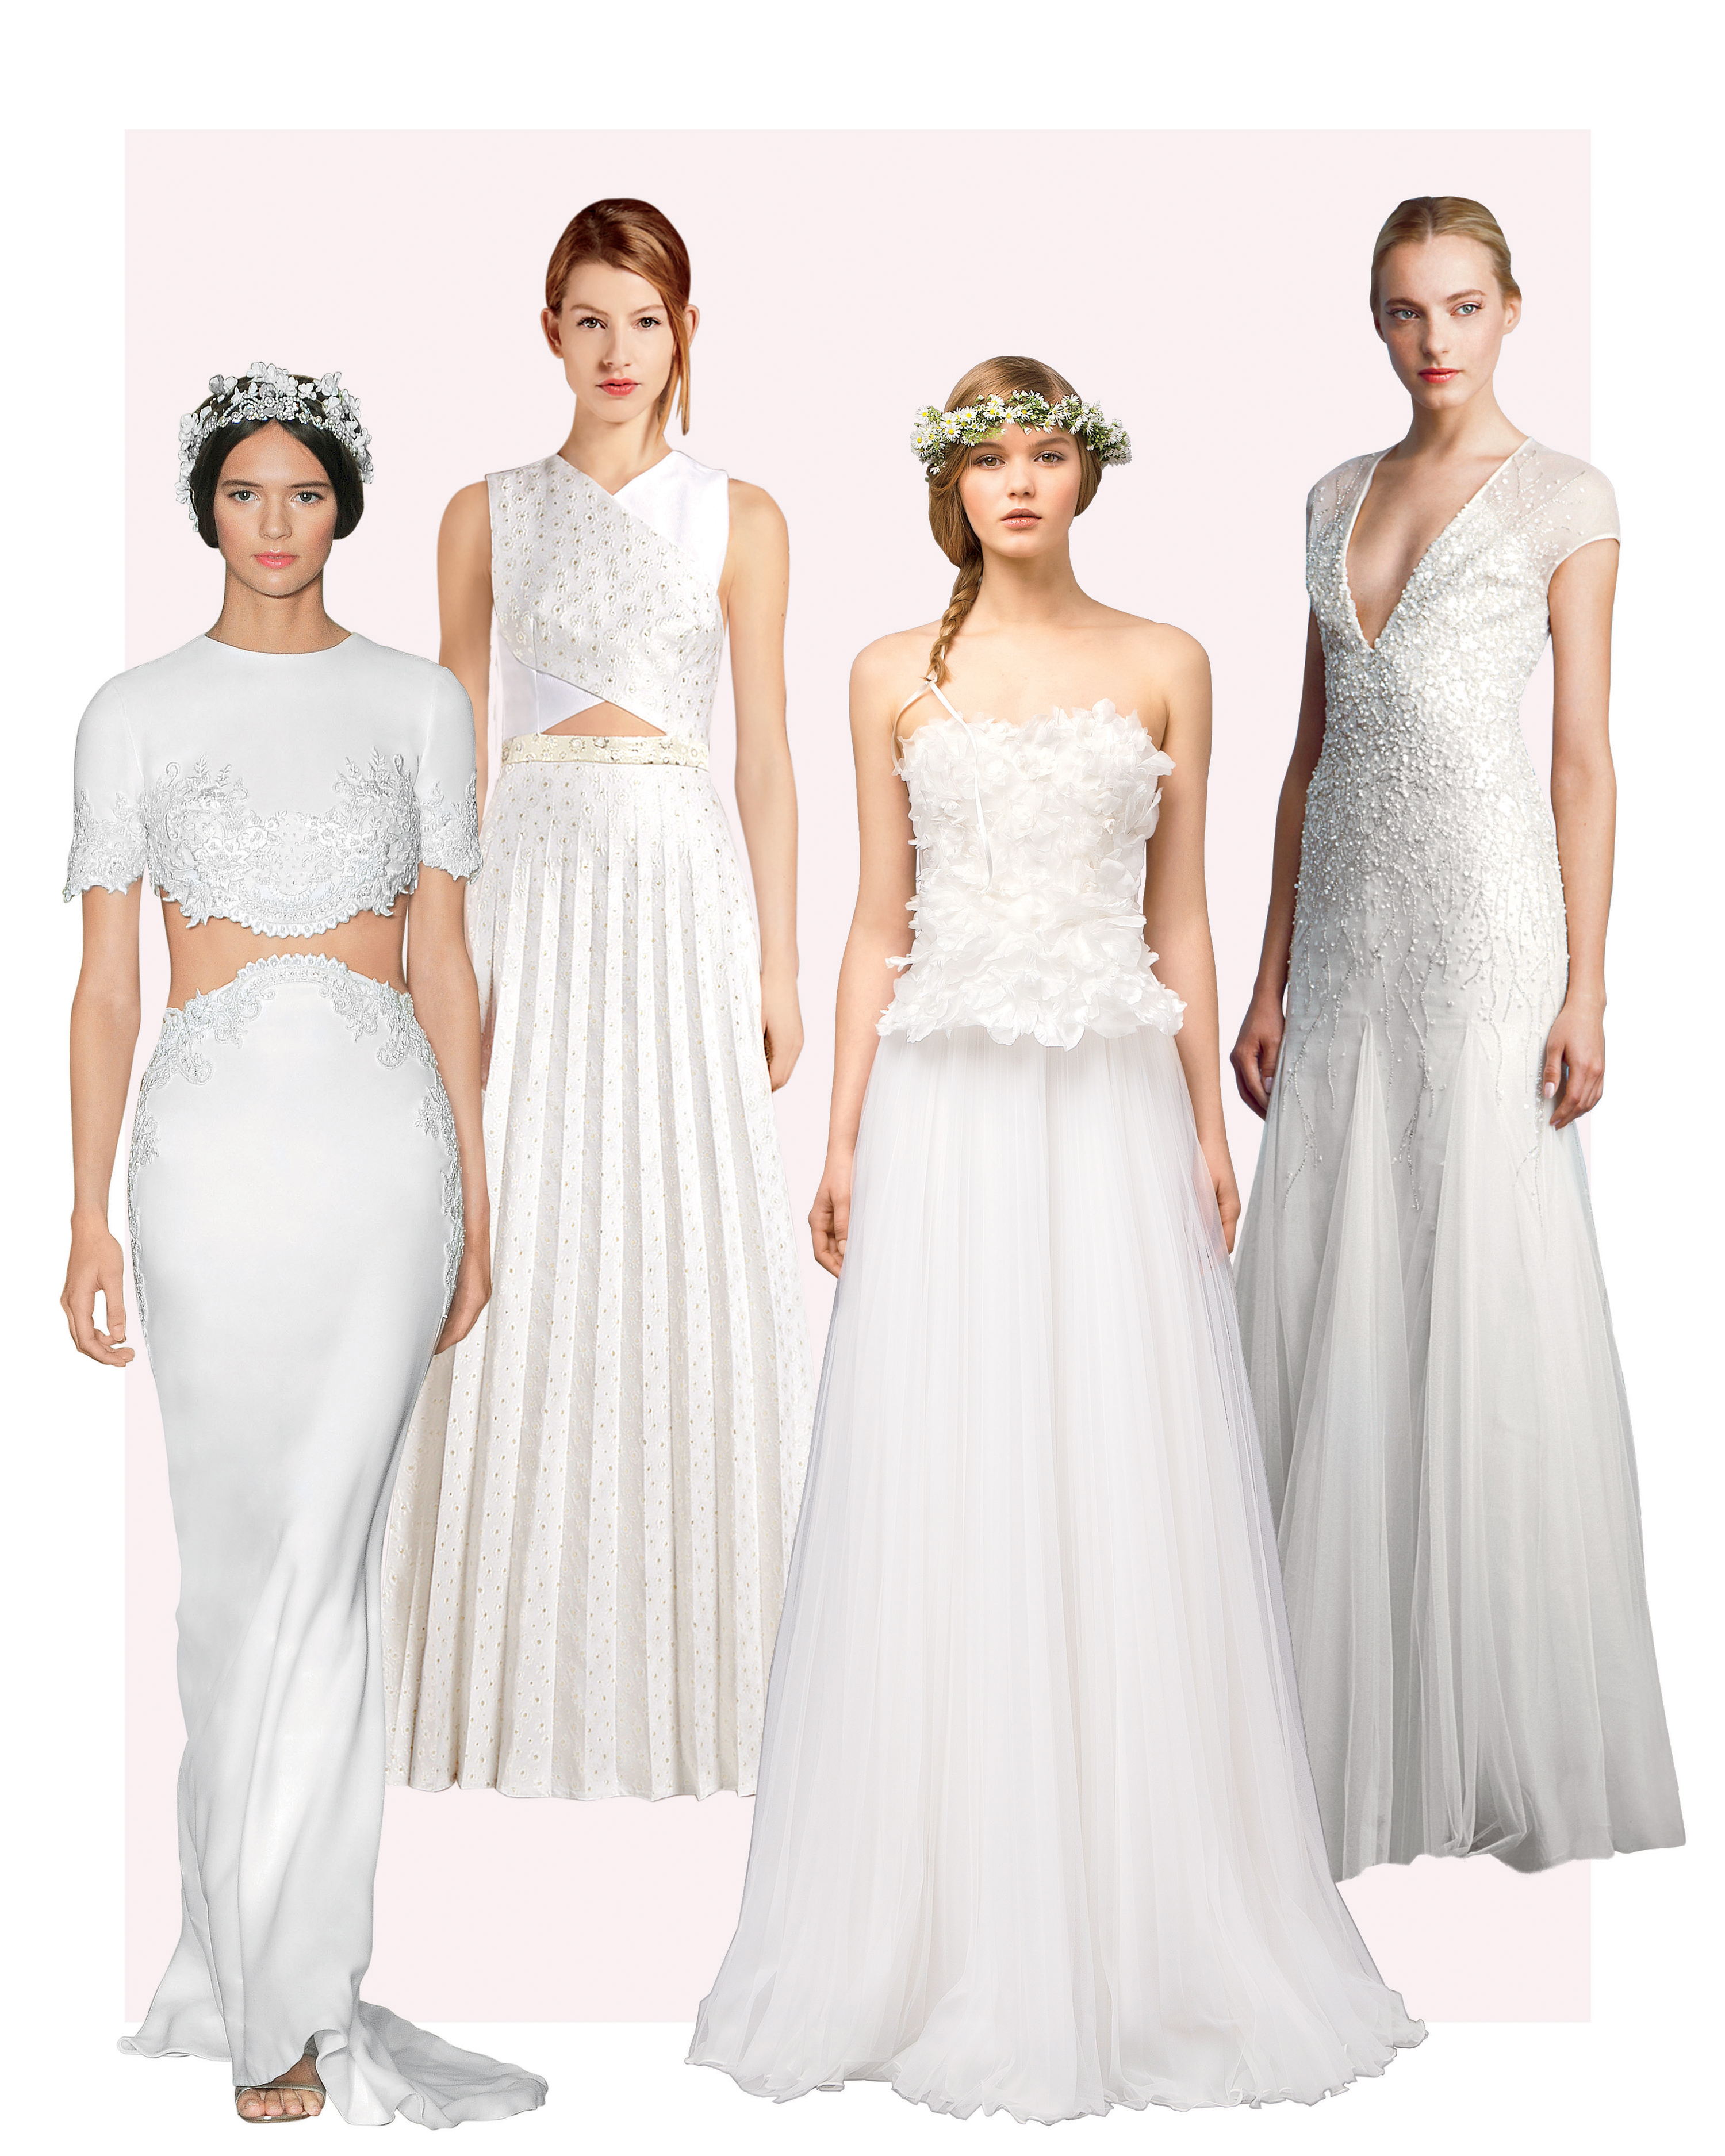 4 Wedding Dress Trends to Inspire Your Big-Day Look